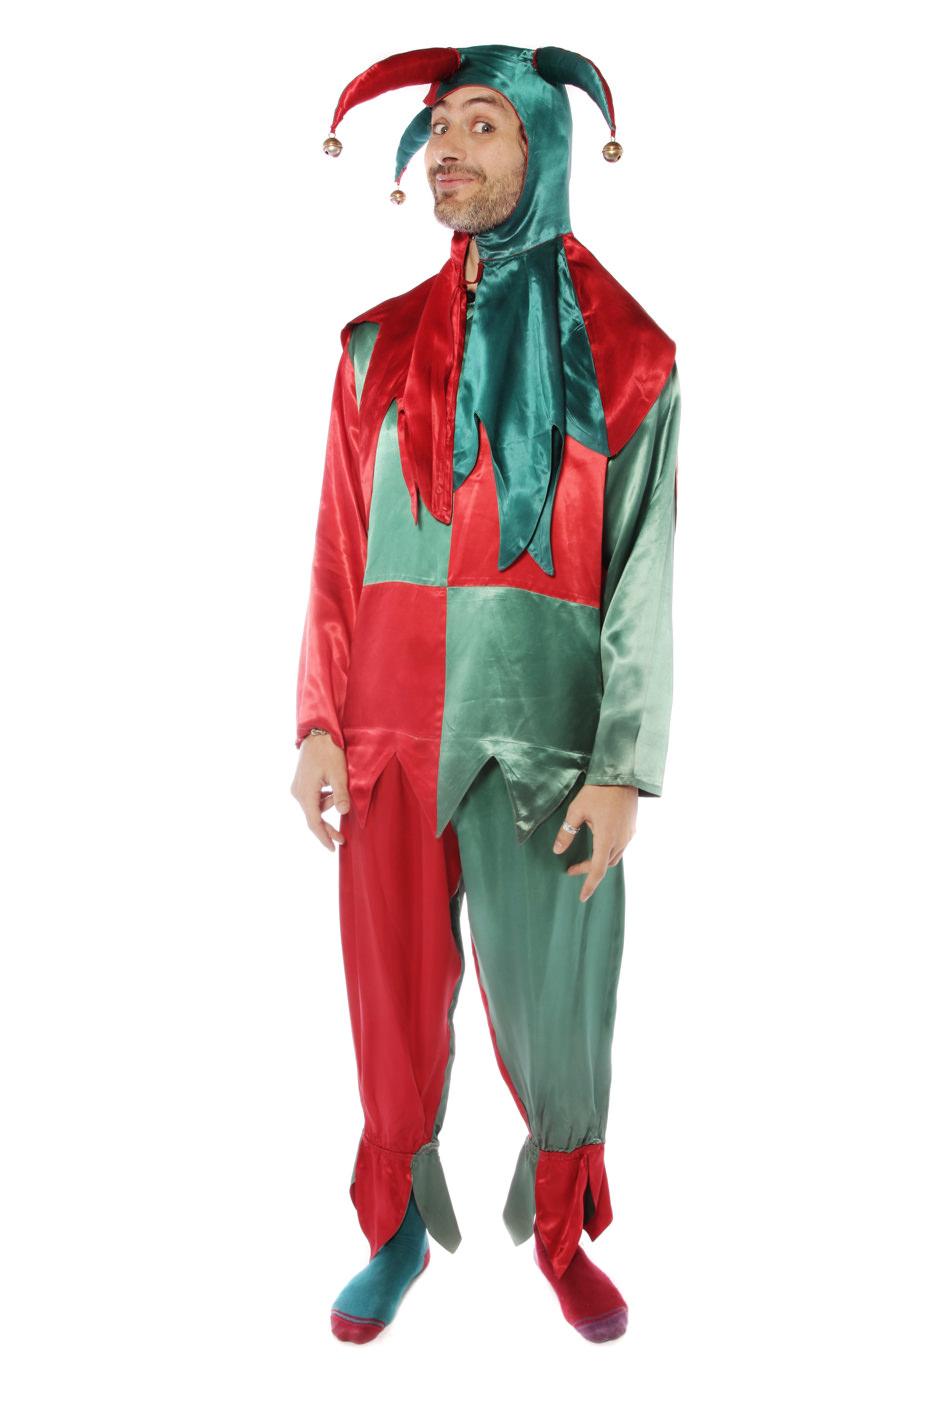 RED AND GREEN JESTER COSTUME W MATCHING HOOD